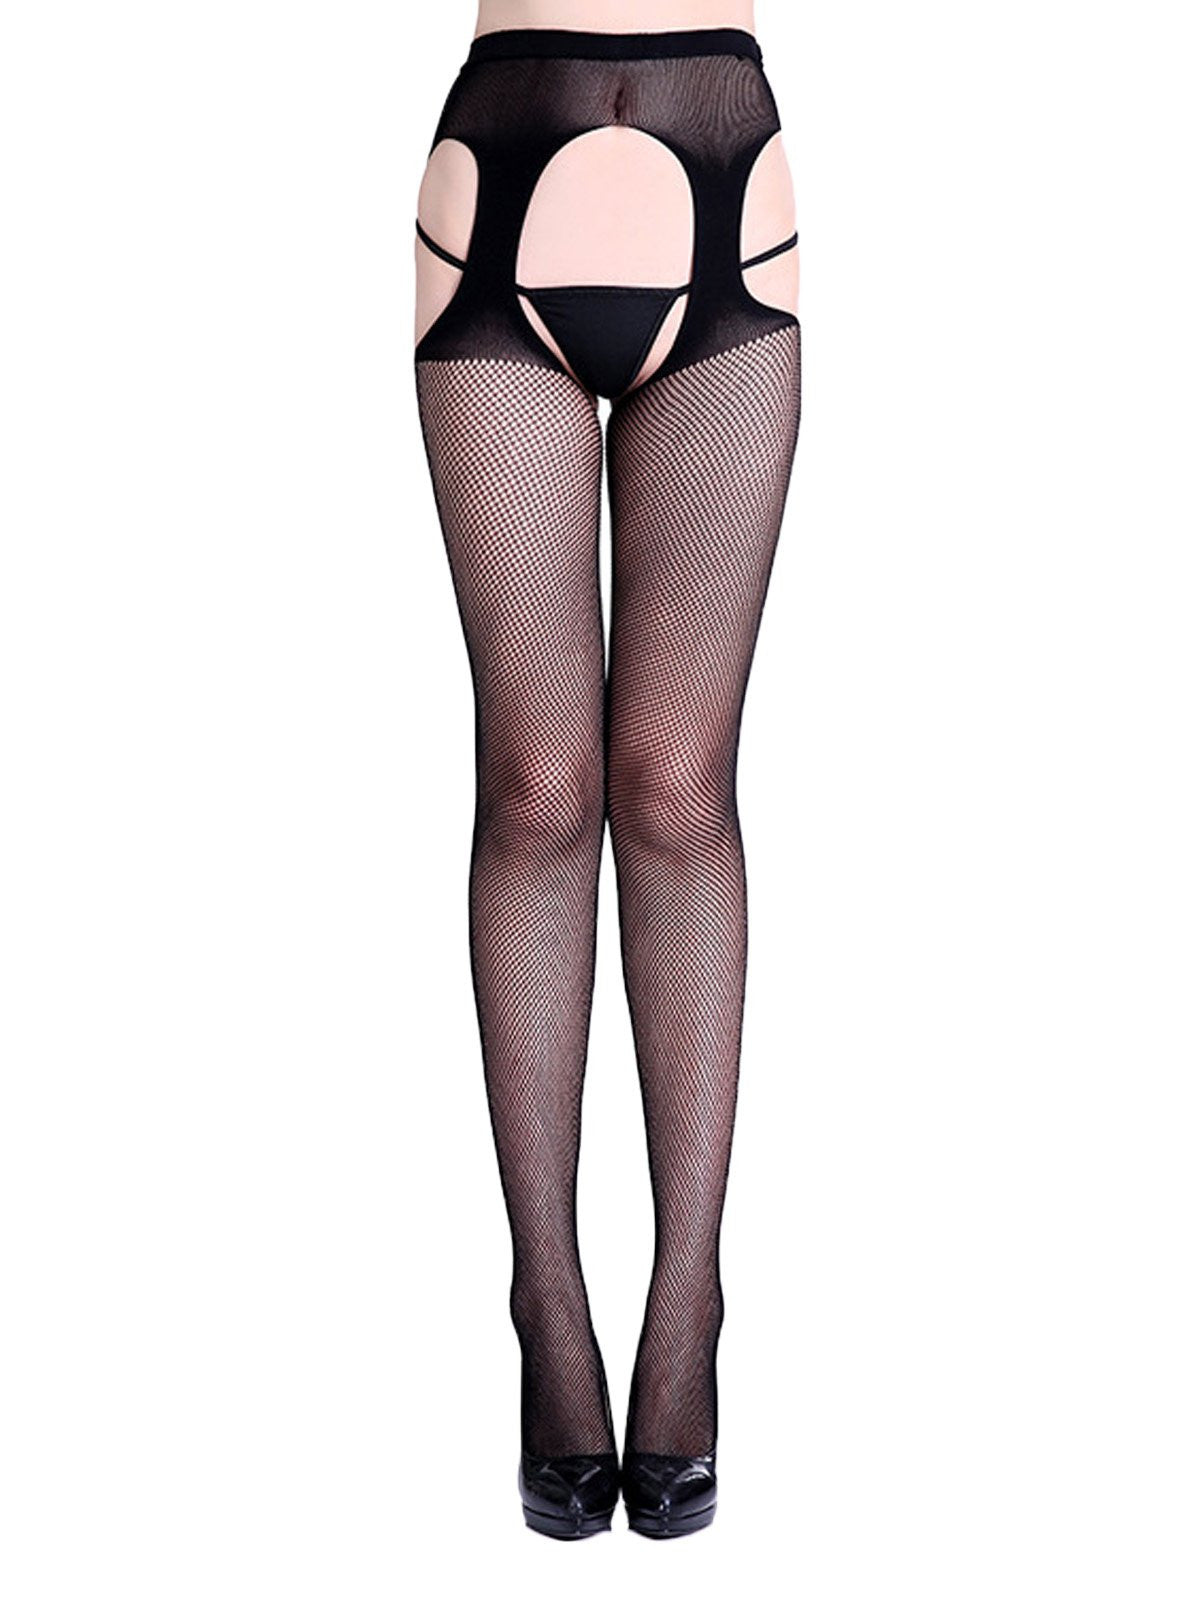 1af743d8e Lace Hollow Crotchless Fishnet Stockings – Retro Stage - Chic ...